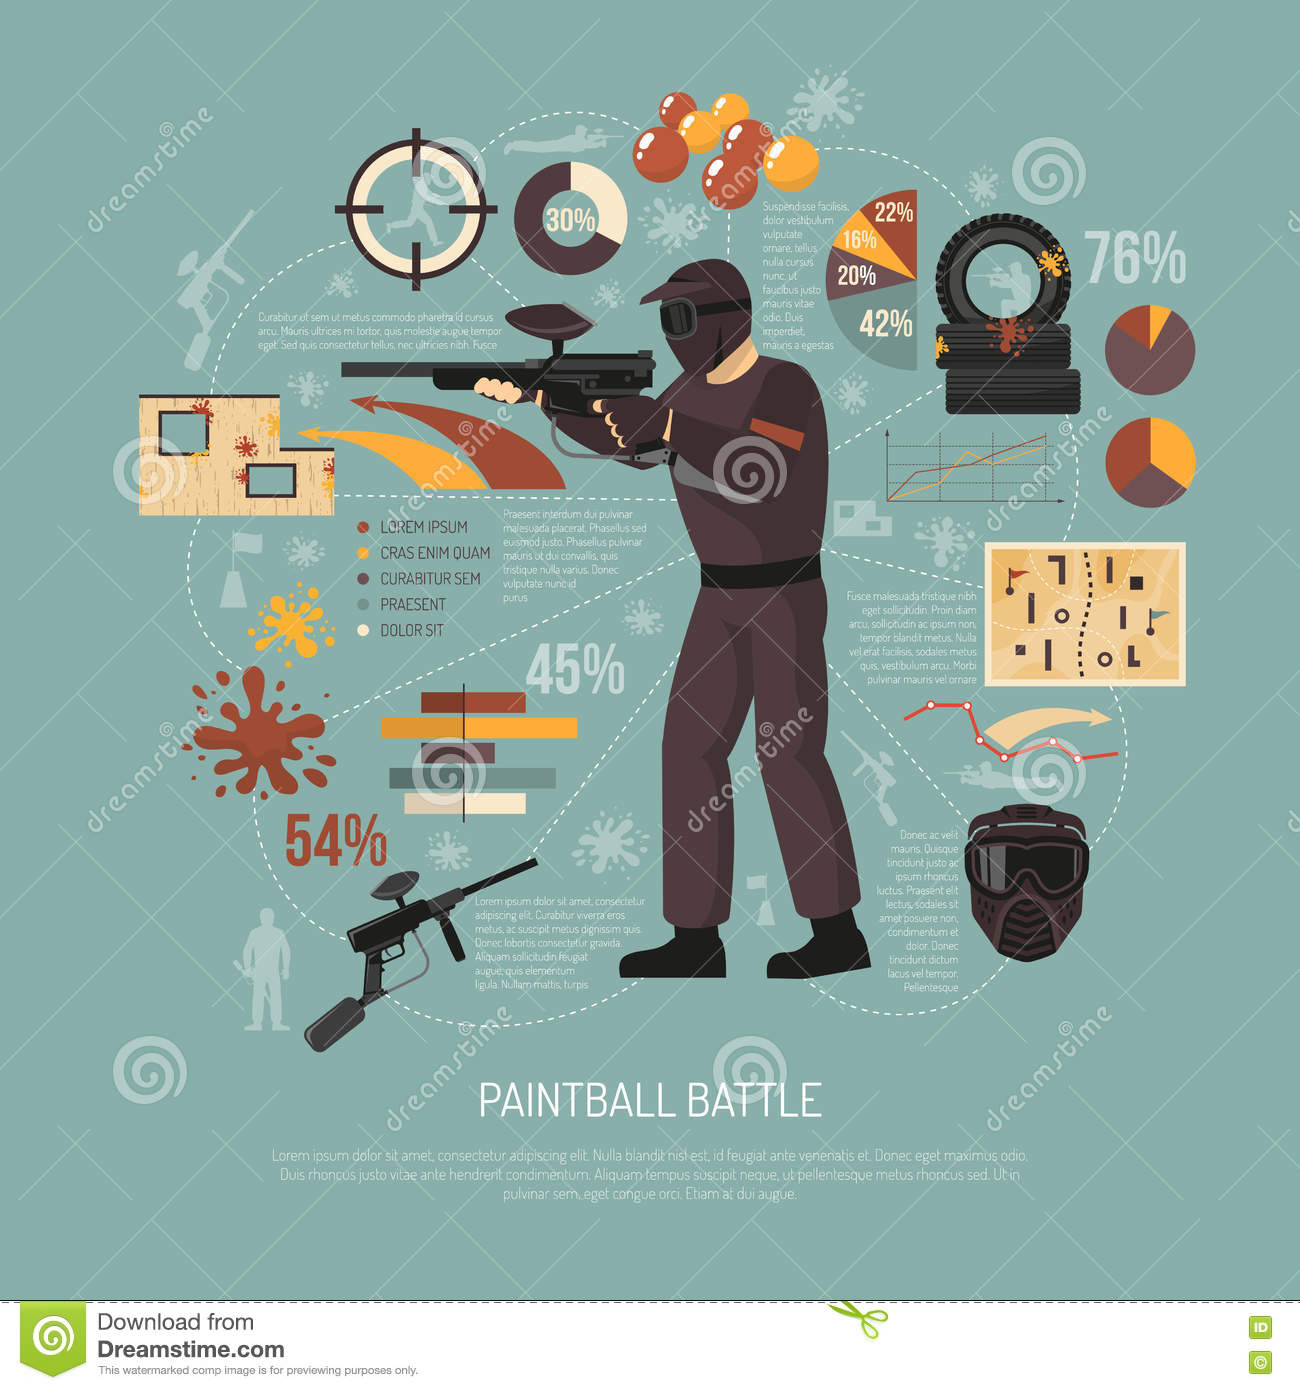 Paintball - The Game - Play on Armor Games